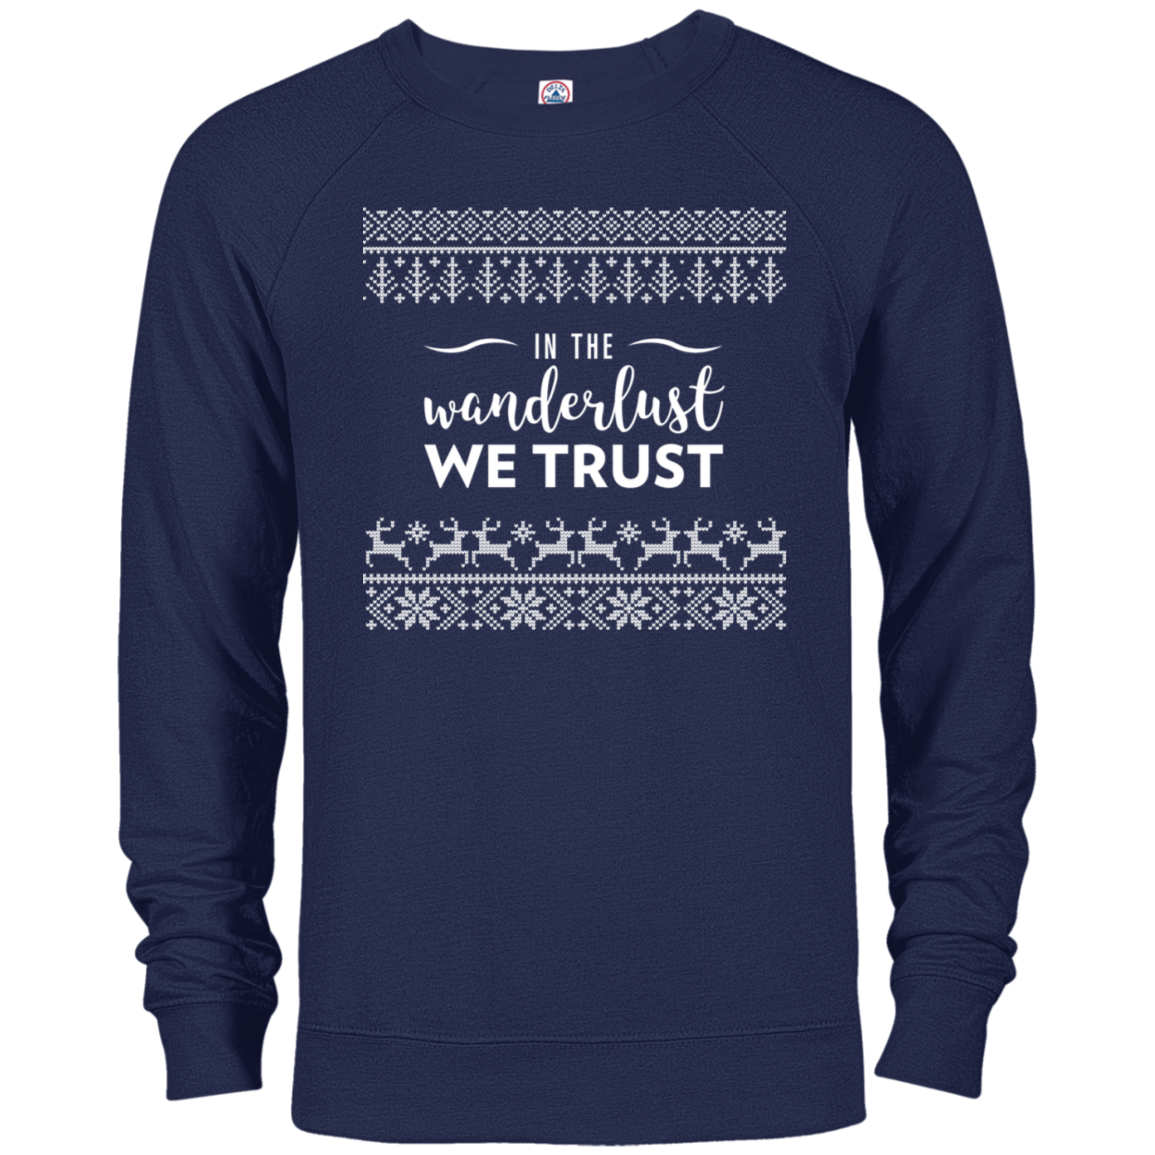 In Wanderlust We Trust Long Sleeve Top (Men's)